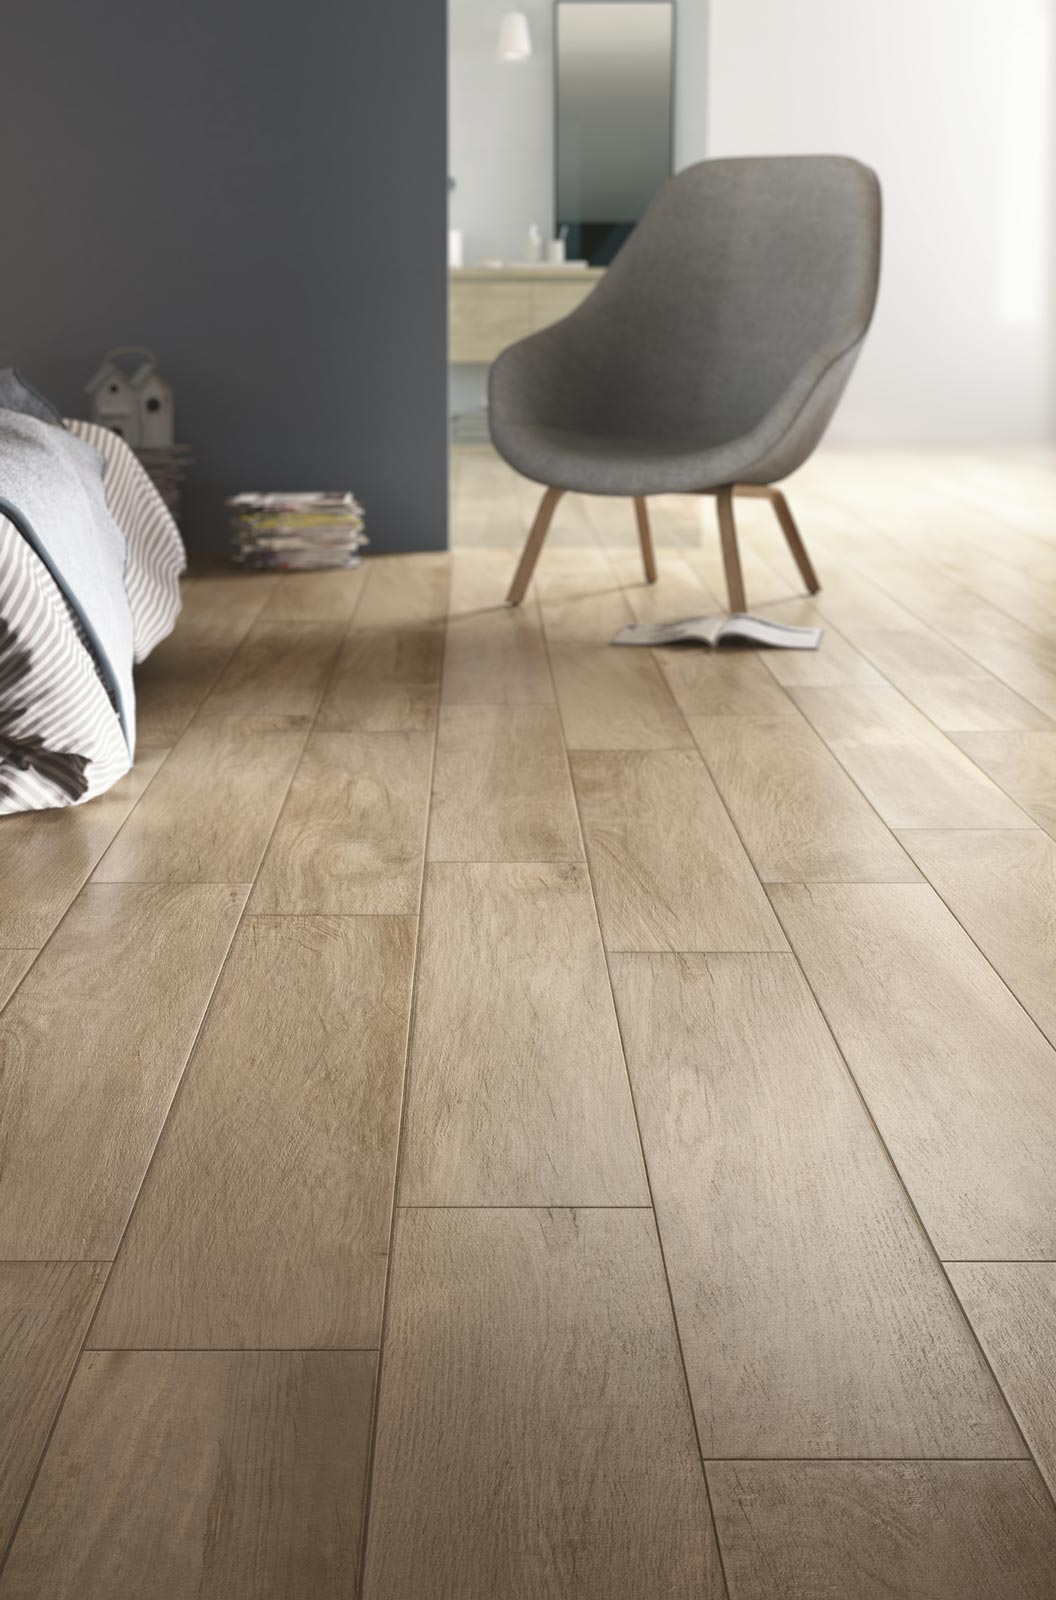 Woodplace wood effect porcelain stoneware ragno for Plinthe en bois avec carrelage